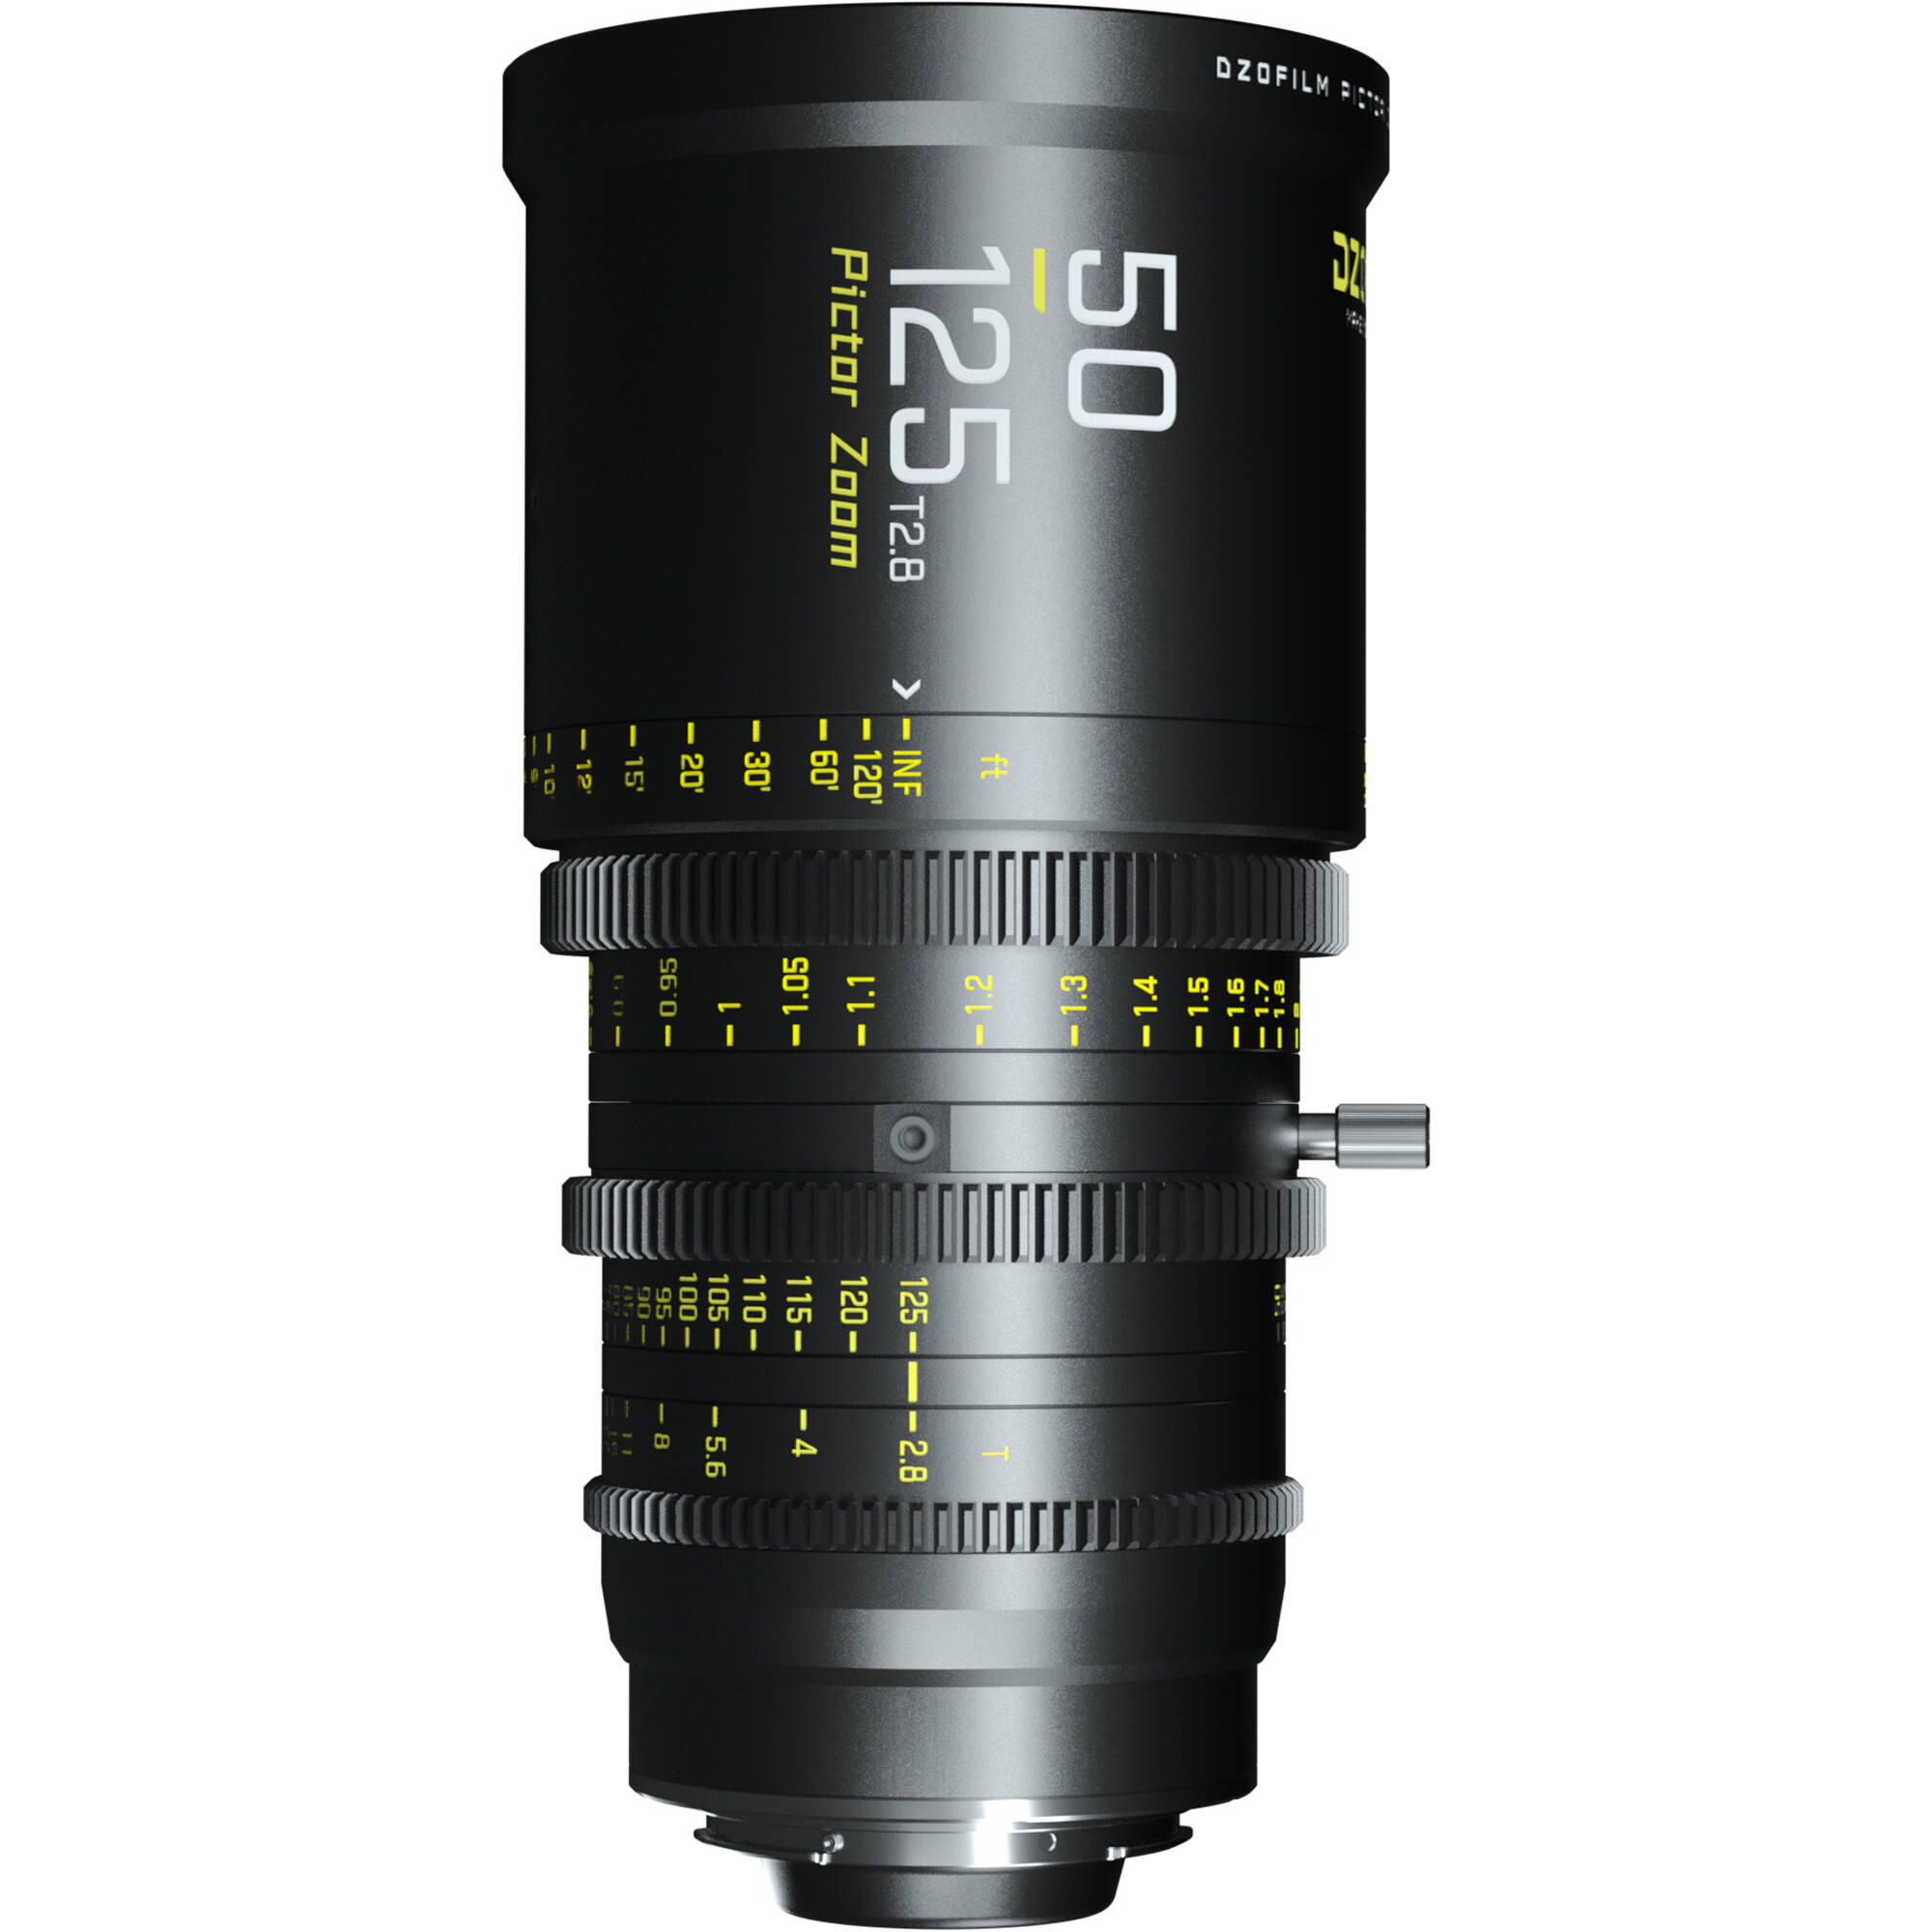 DZOFilm Pictor 50-125mm T2.8 Super35 Parfocal Zoom Lens (PL / EF Mount)